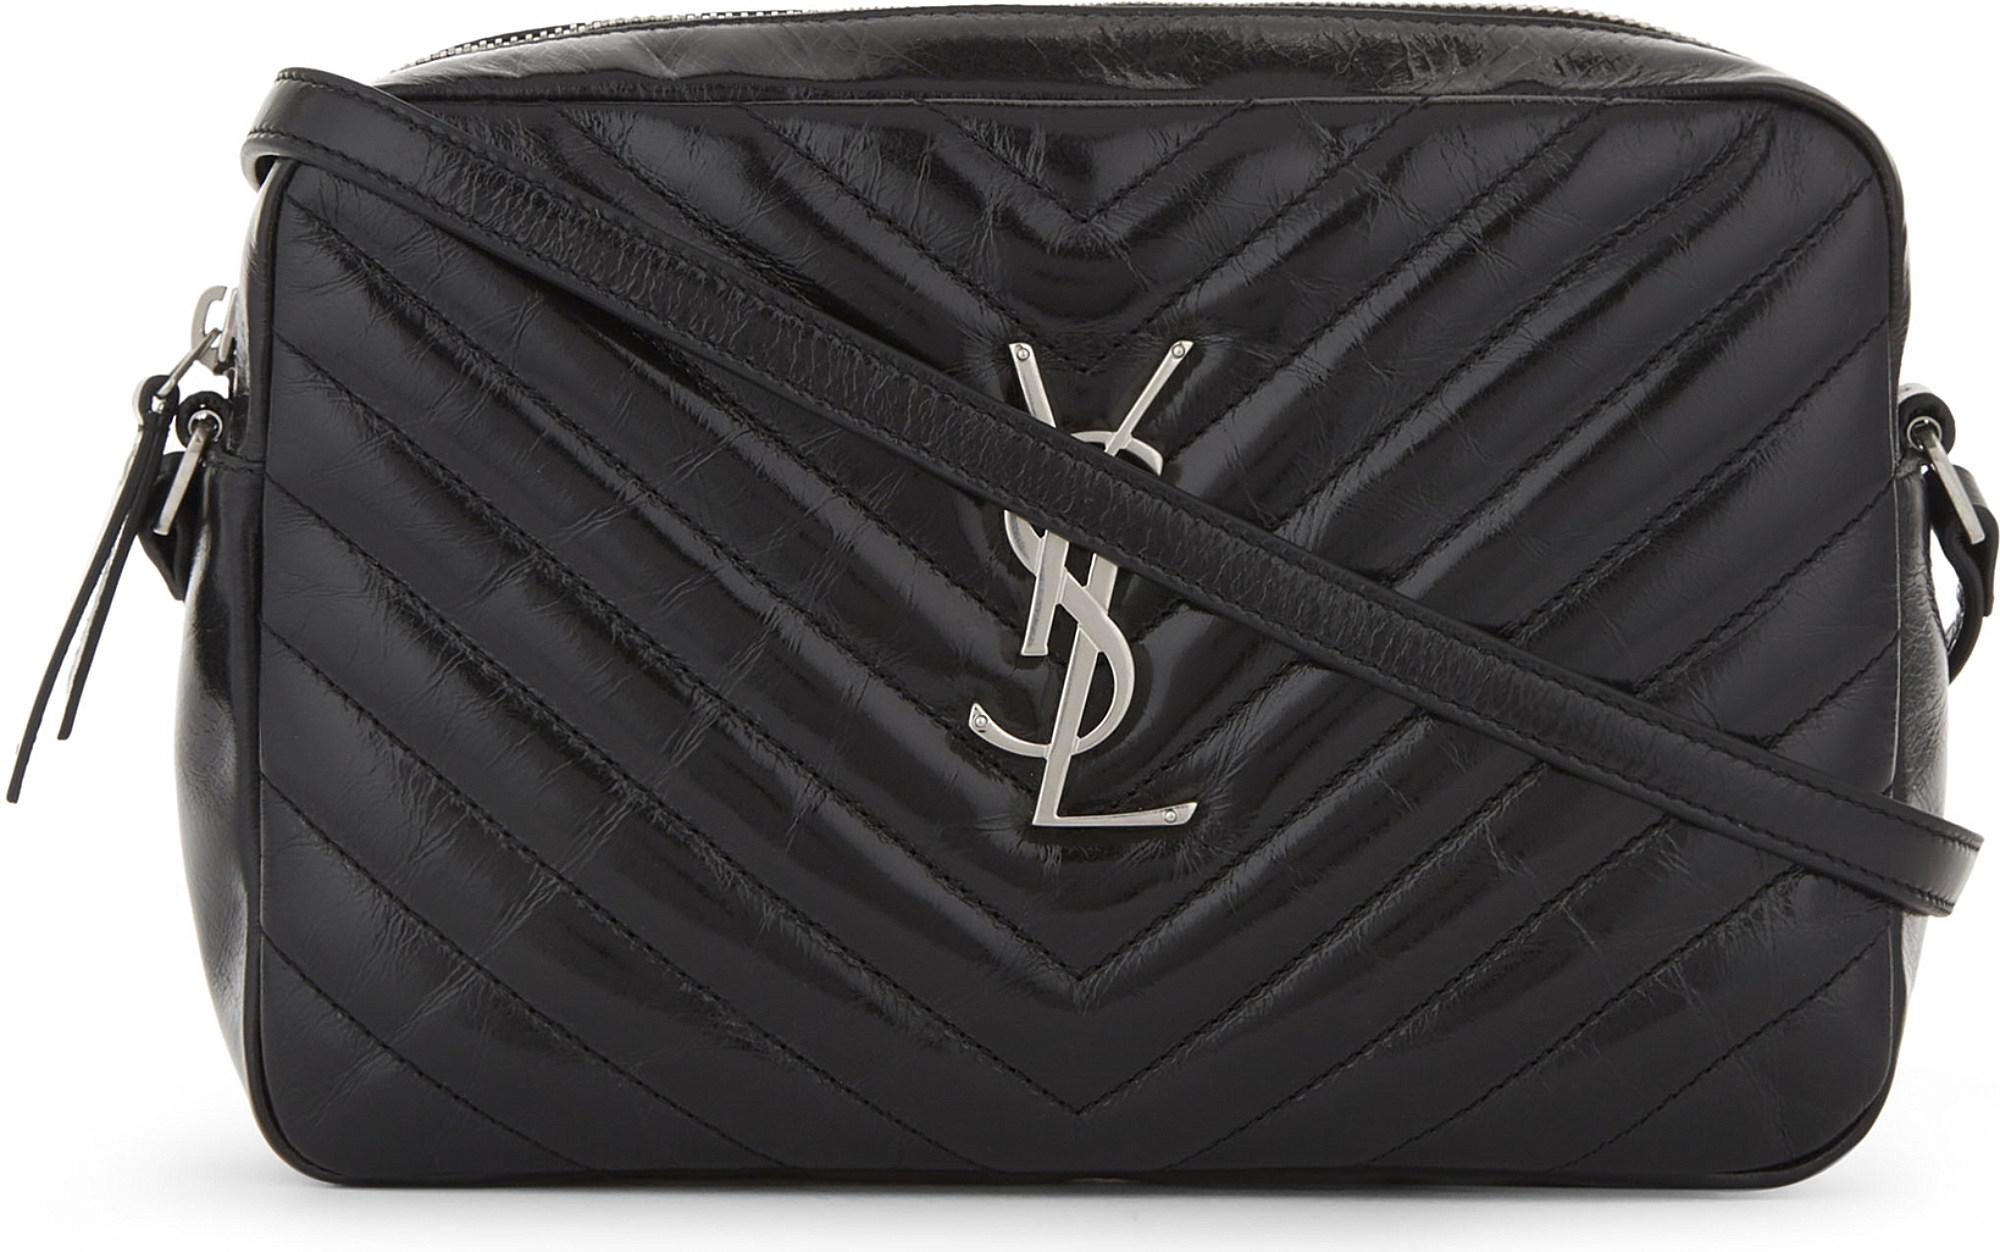 7b1a1e927db Saint Laurent Monogram Lou Medium Quilted Leather Cross-body Bag in ...